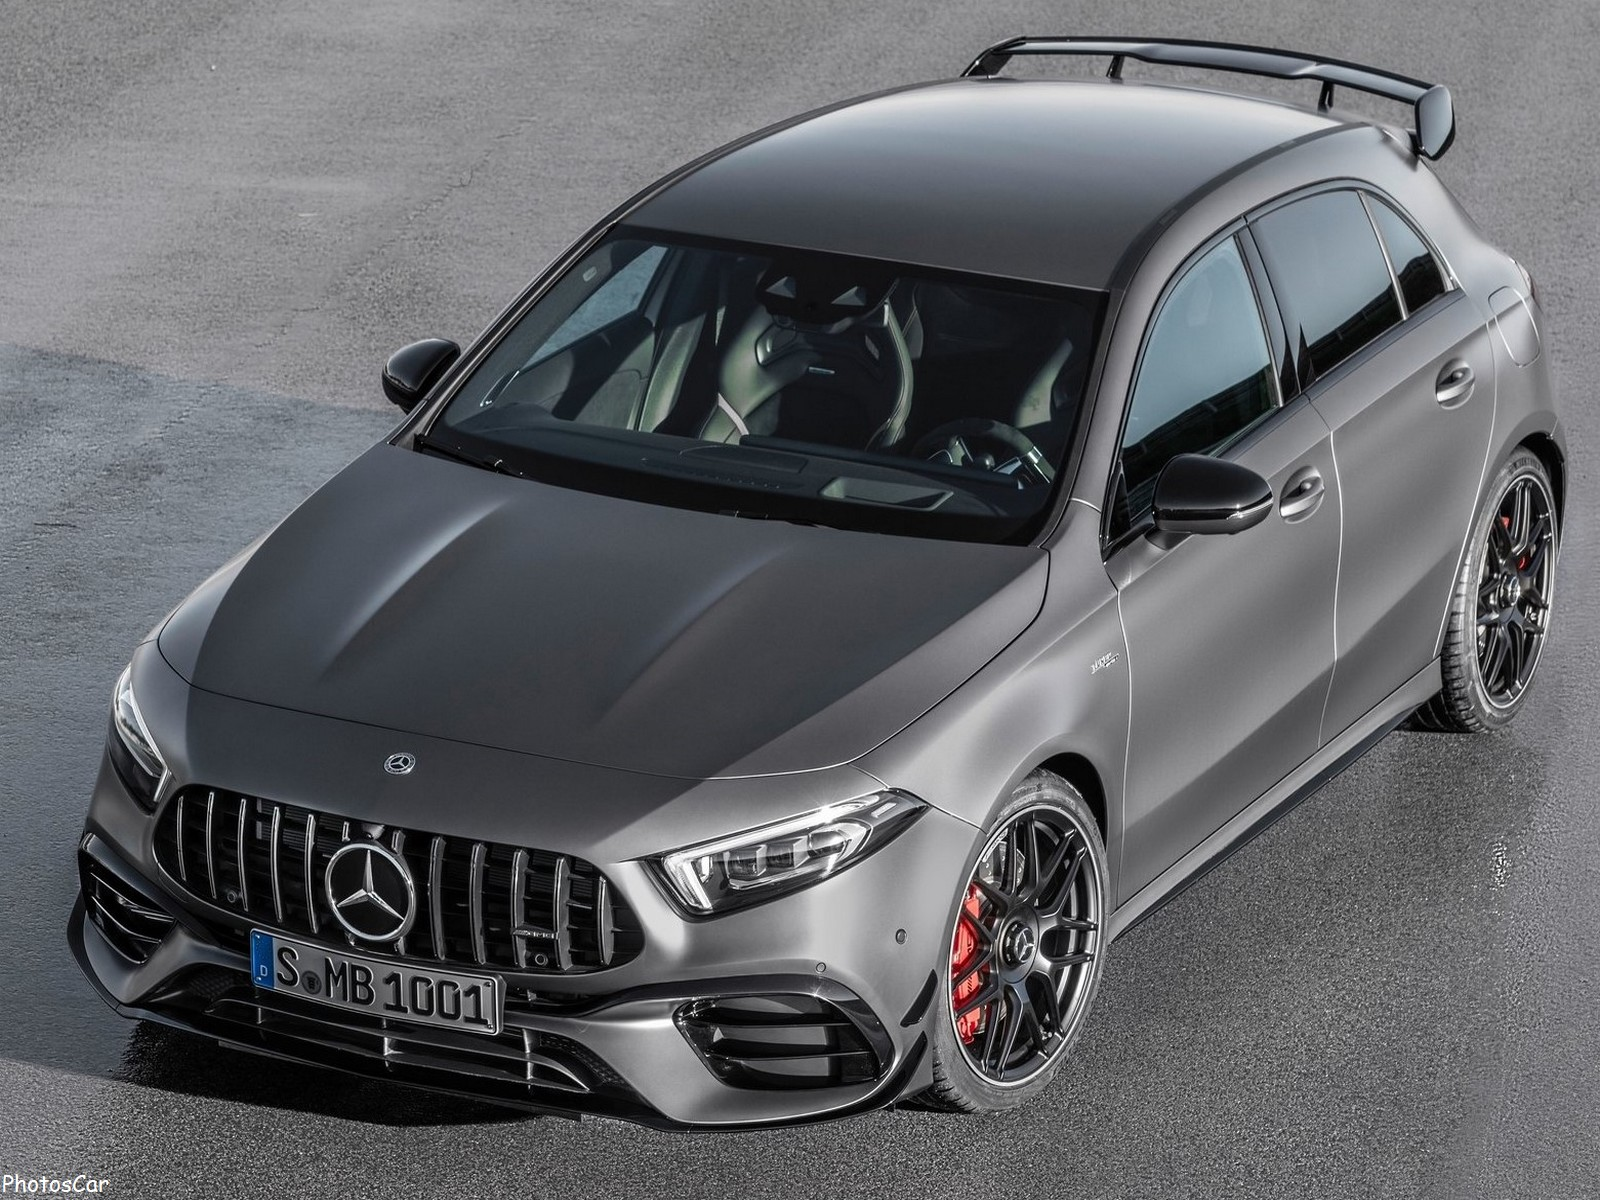 Mercedes-AMG A45 S 4Matic 2020